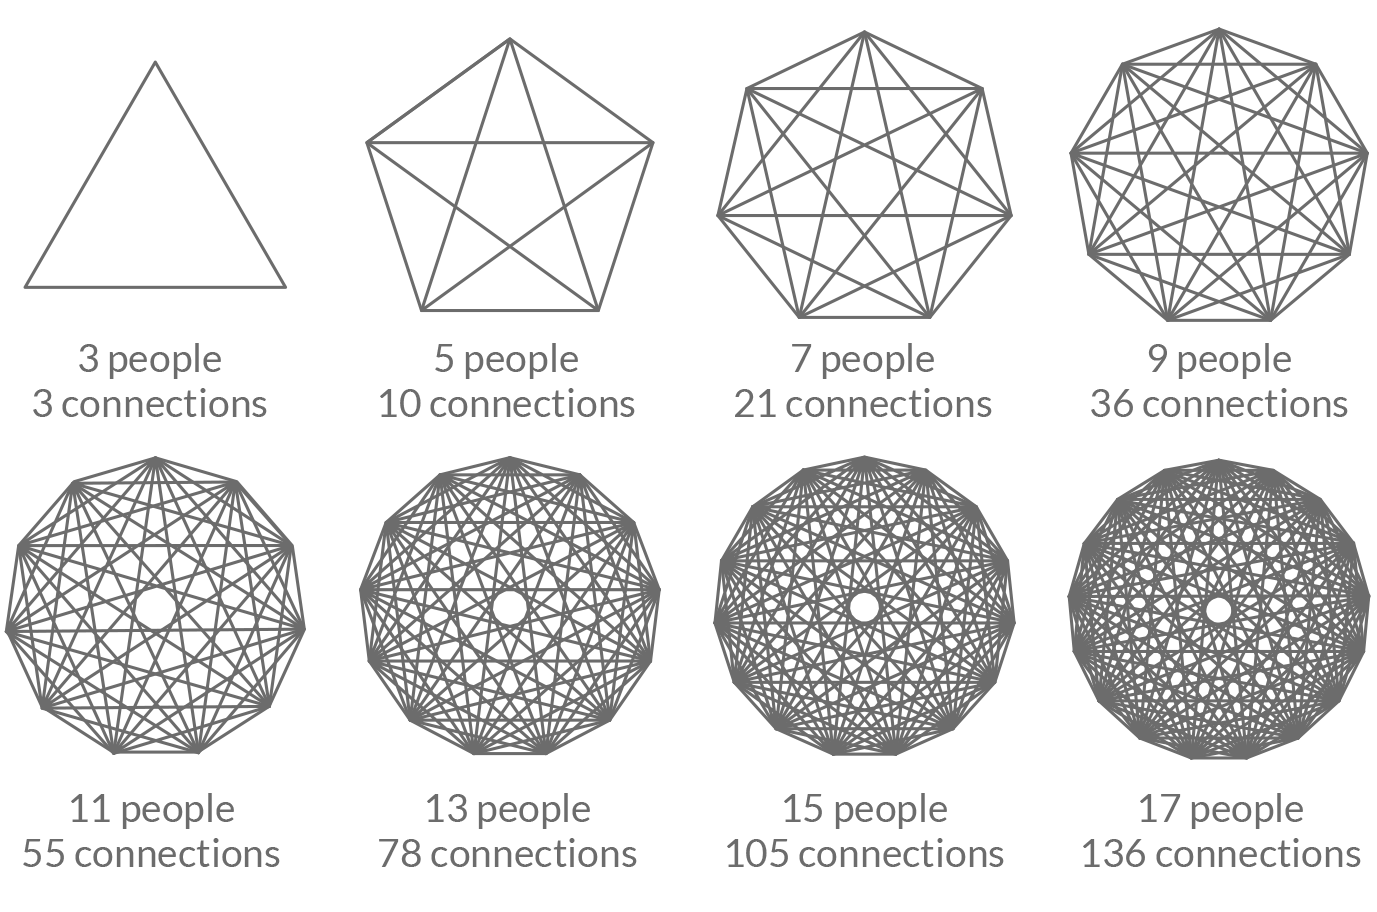 Spirographs showing the number of connections between various group sizes.